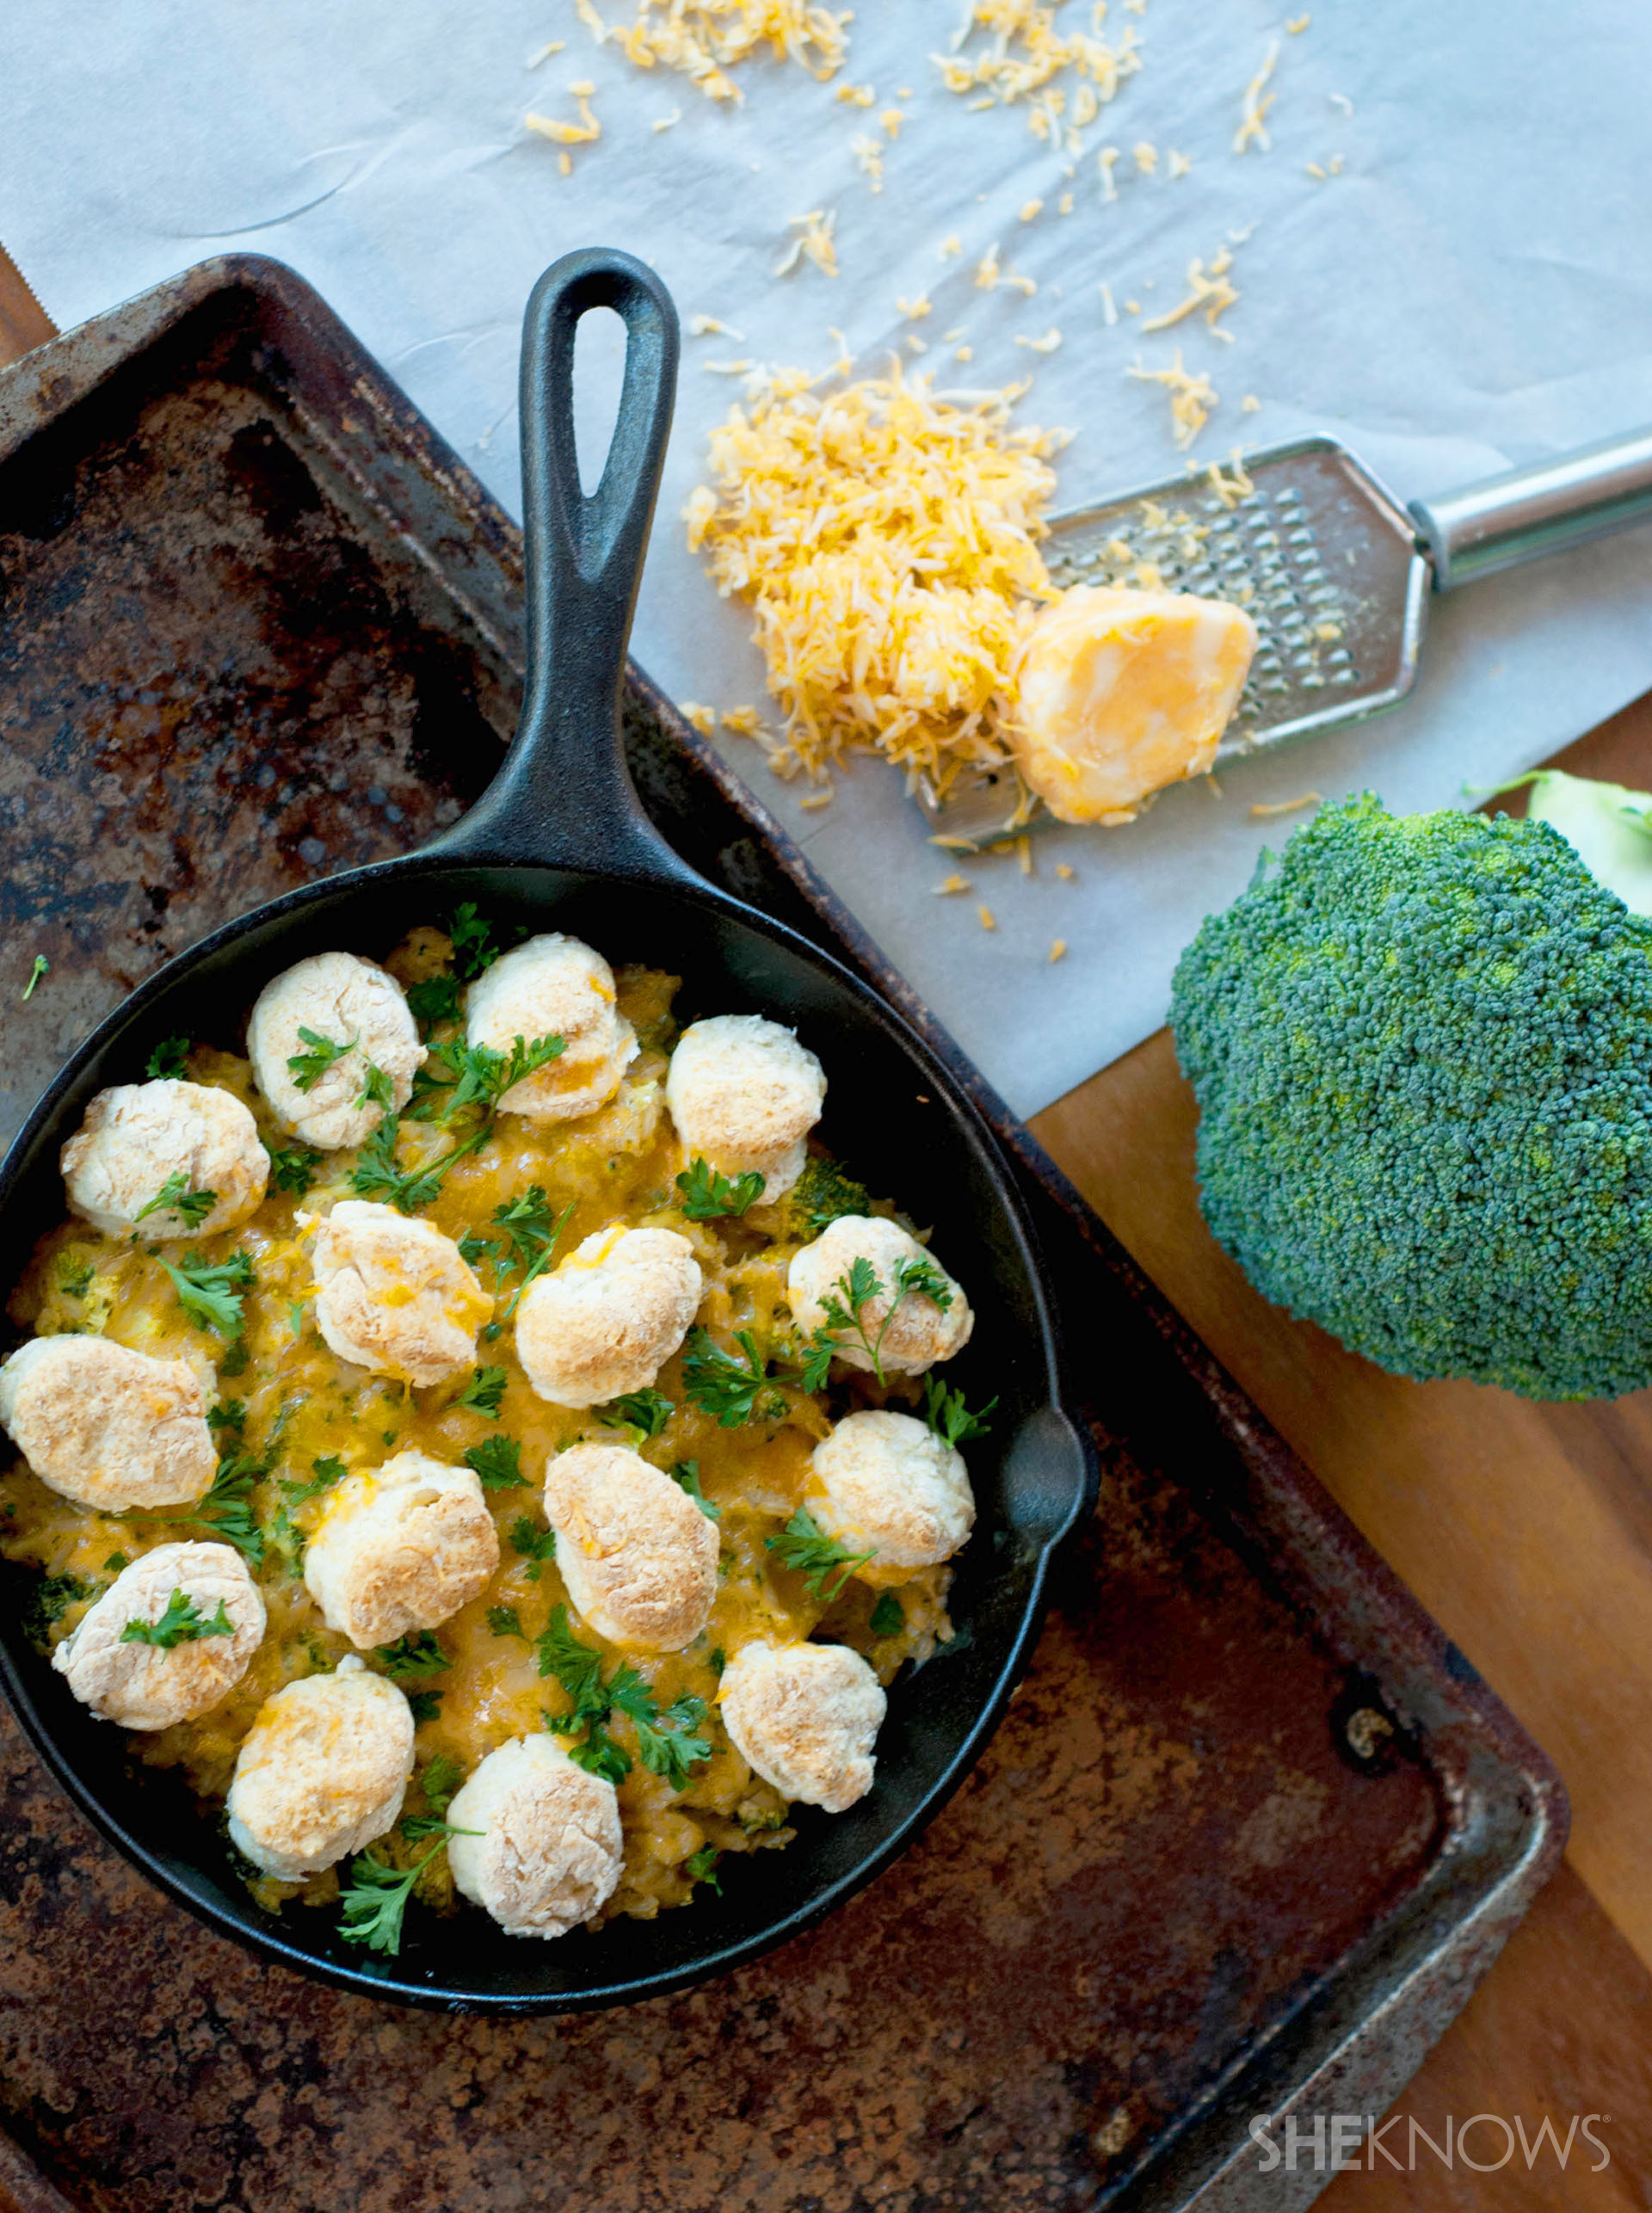 Broccoli cheddar brown rice bake with biscuit crust recipe